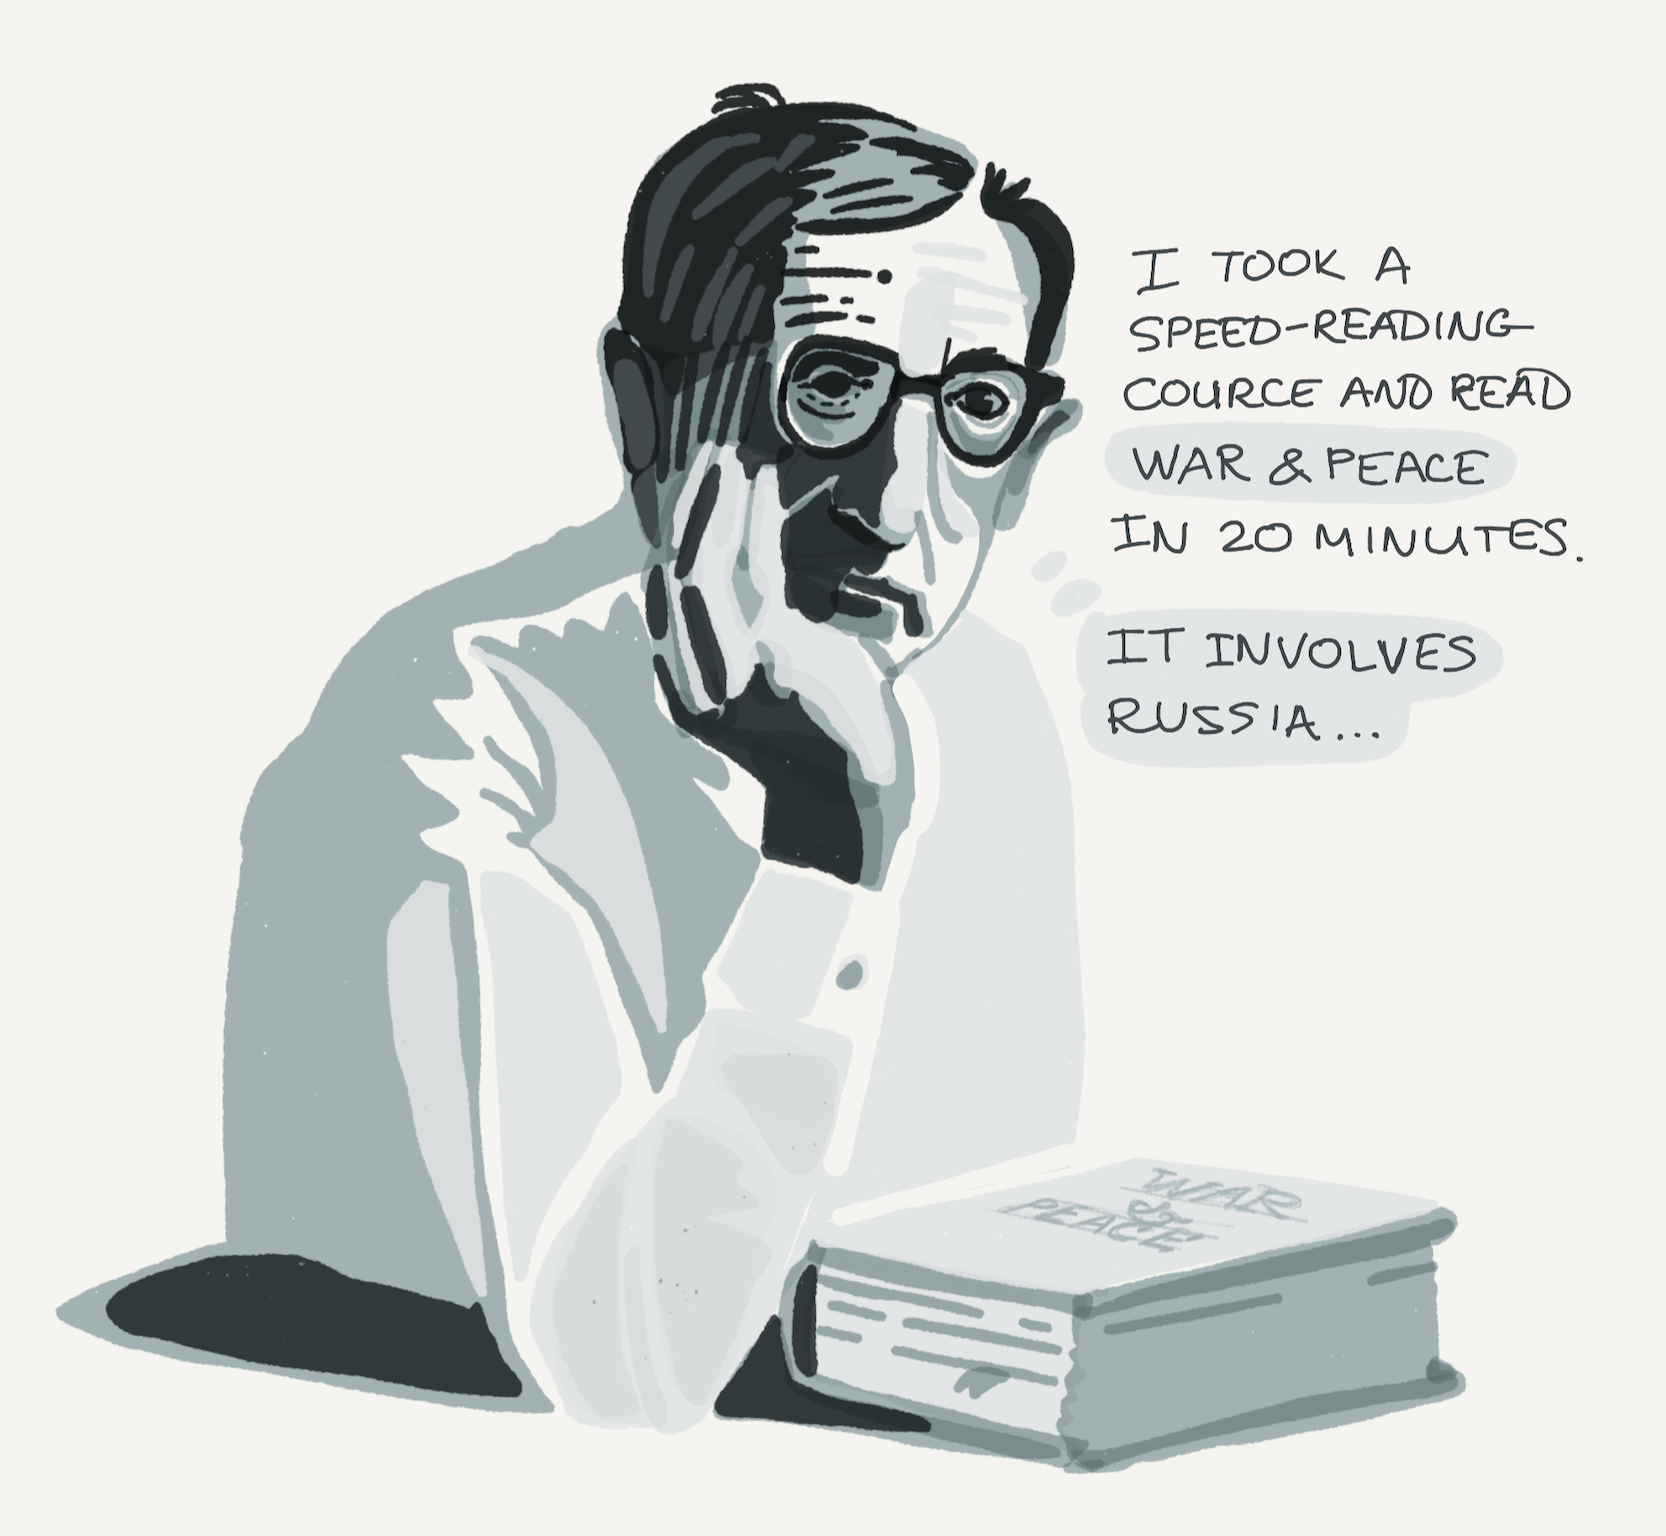 Woody Allen's experience with speed-reading is a loss of comprehension.